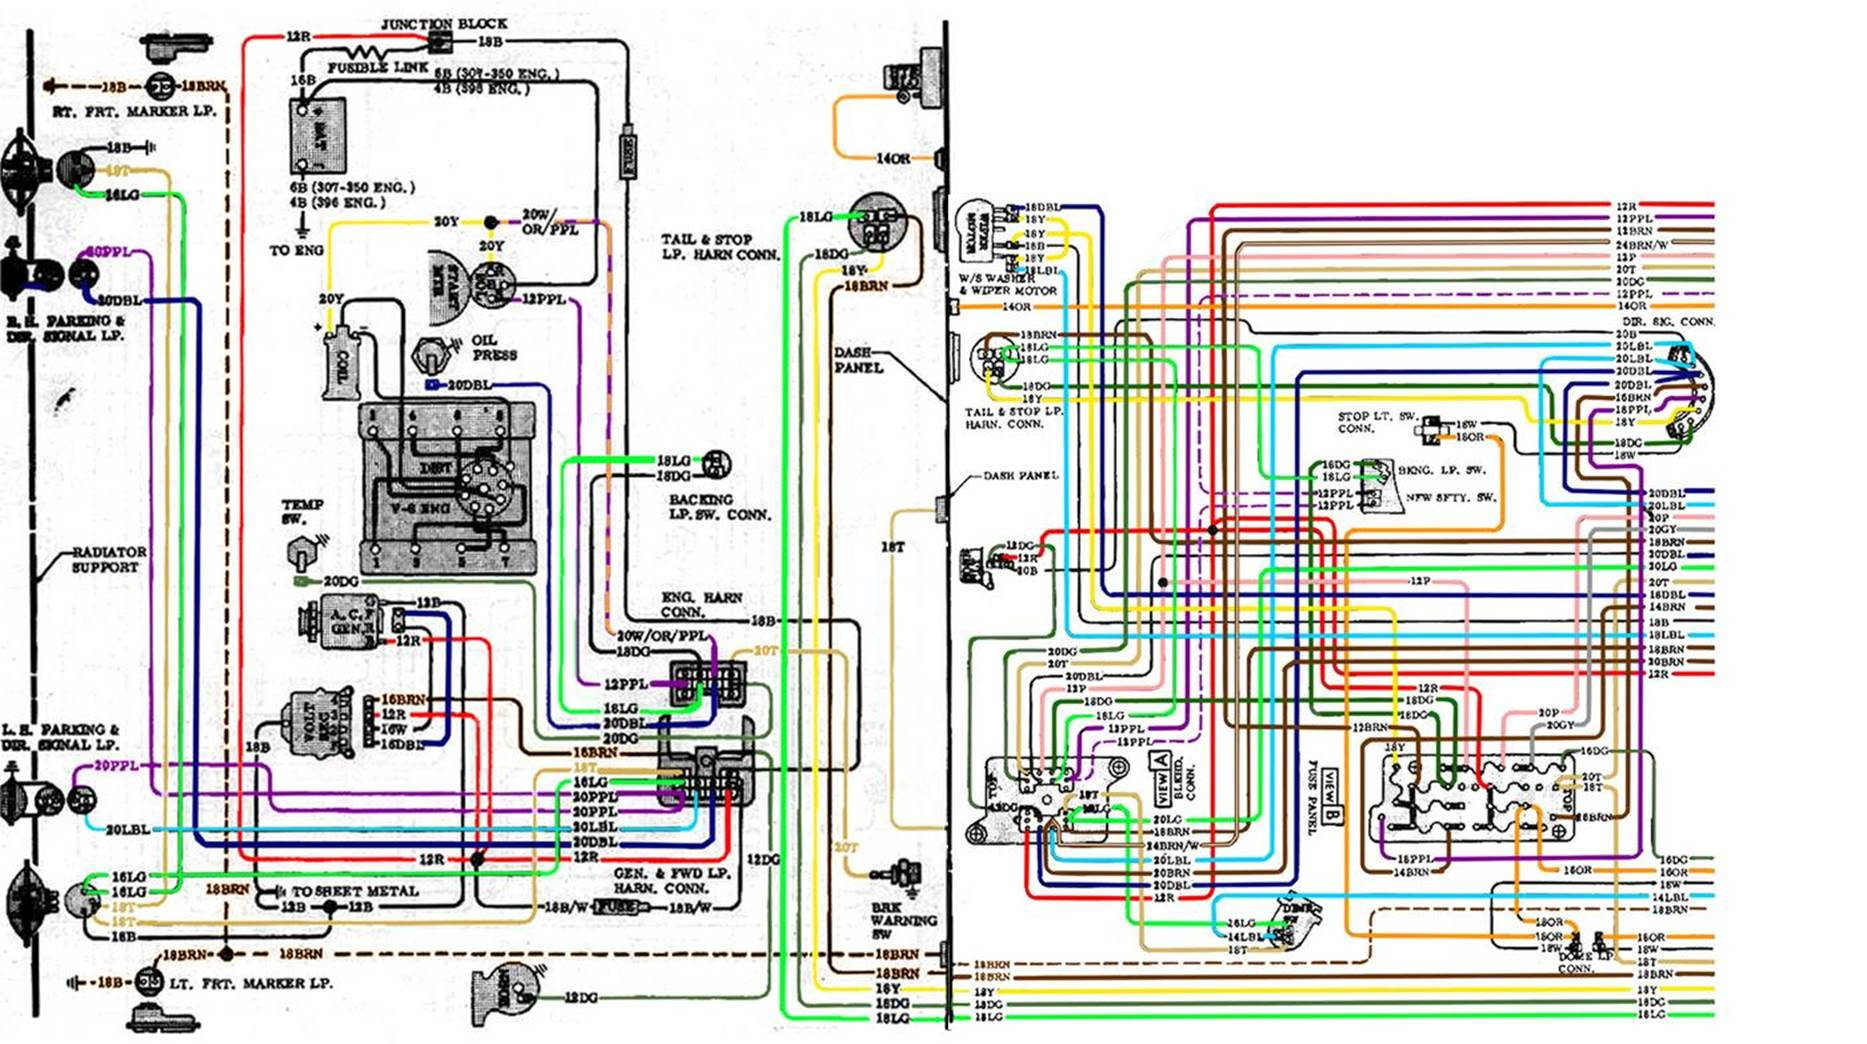 image002 67 72 chevy wiring diagram 1969 c20 wiring diagram at alyssarenee.co